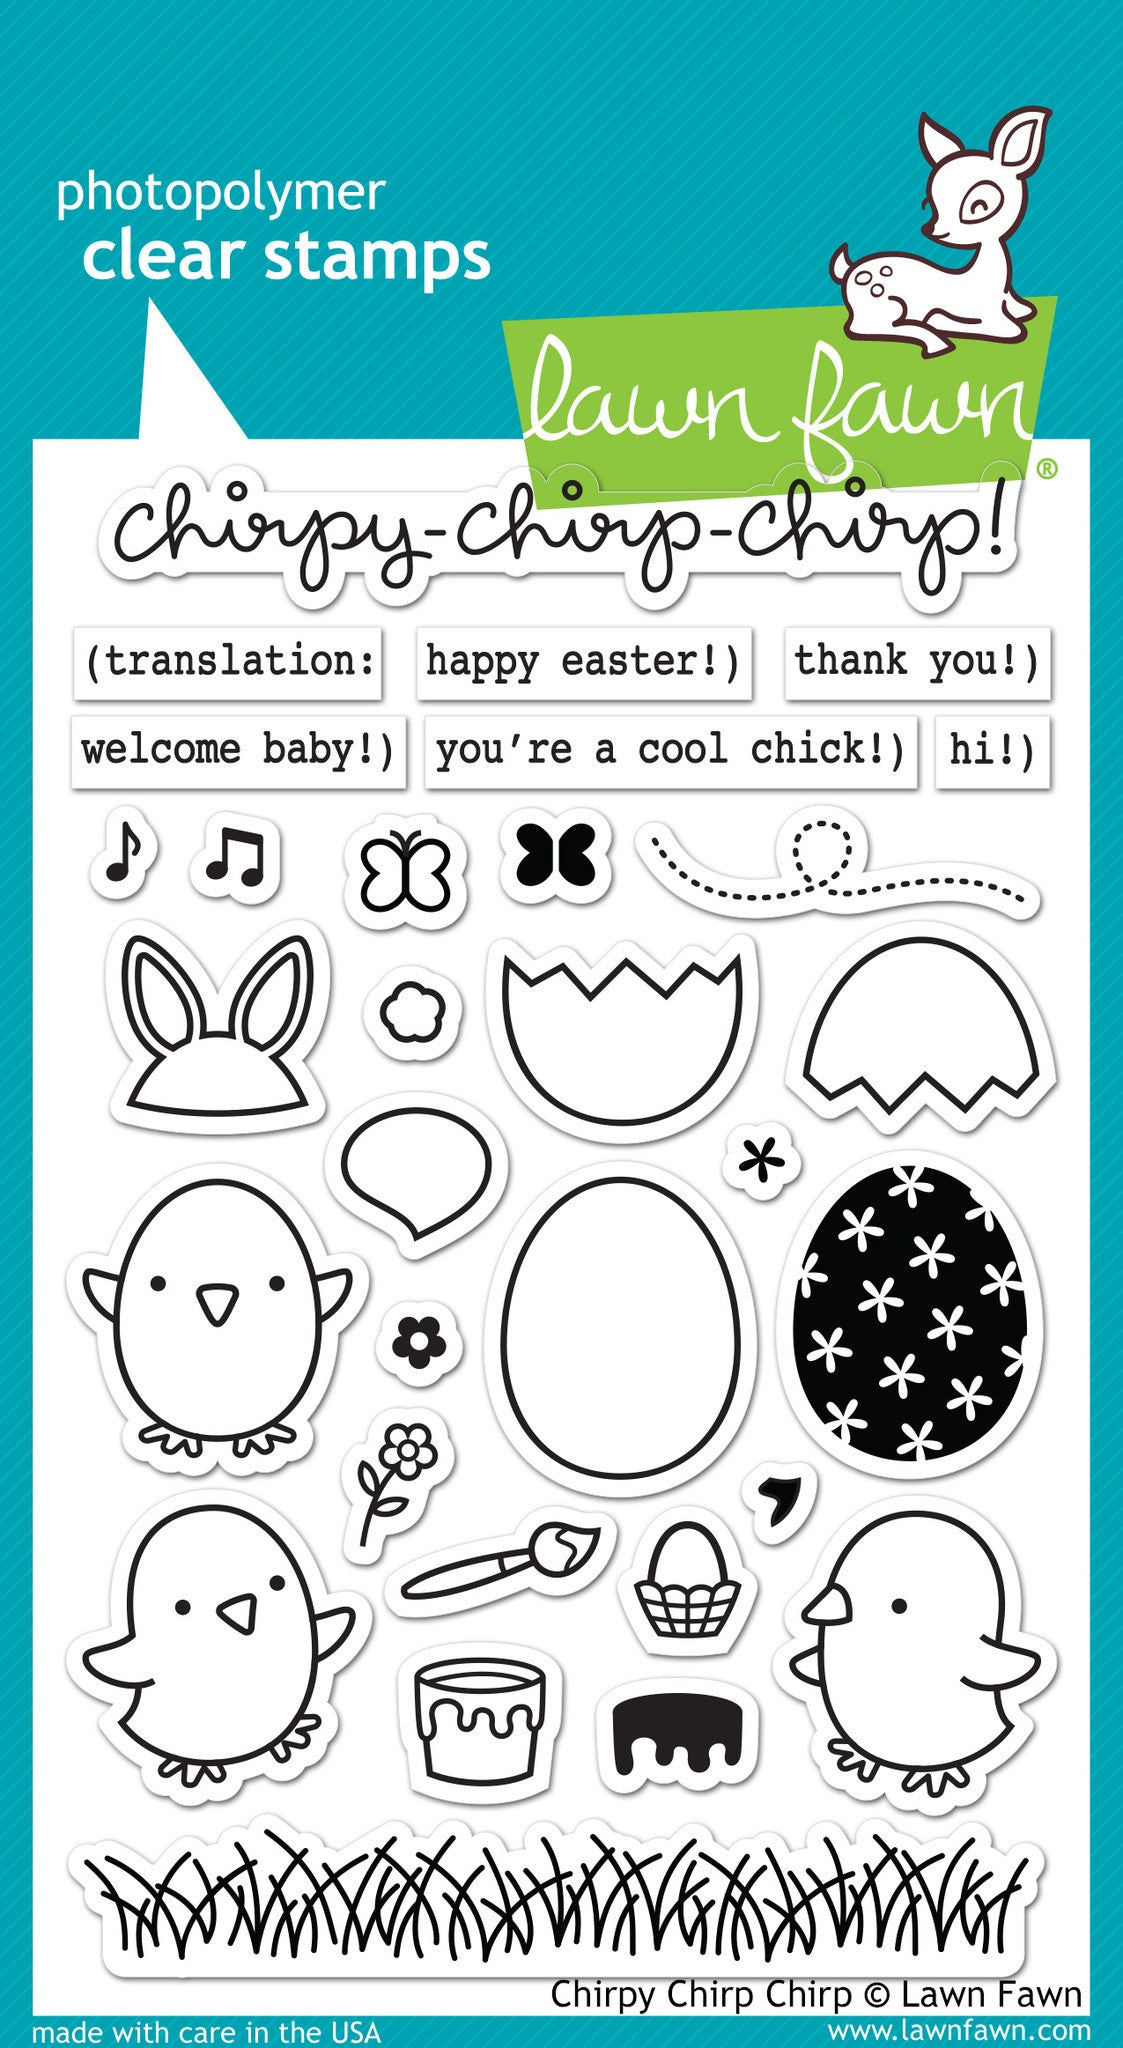 Image result for lawn fawn chirpy chirp chirp